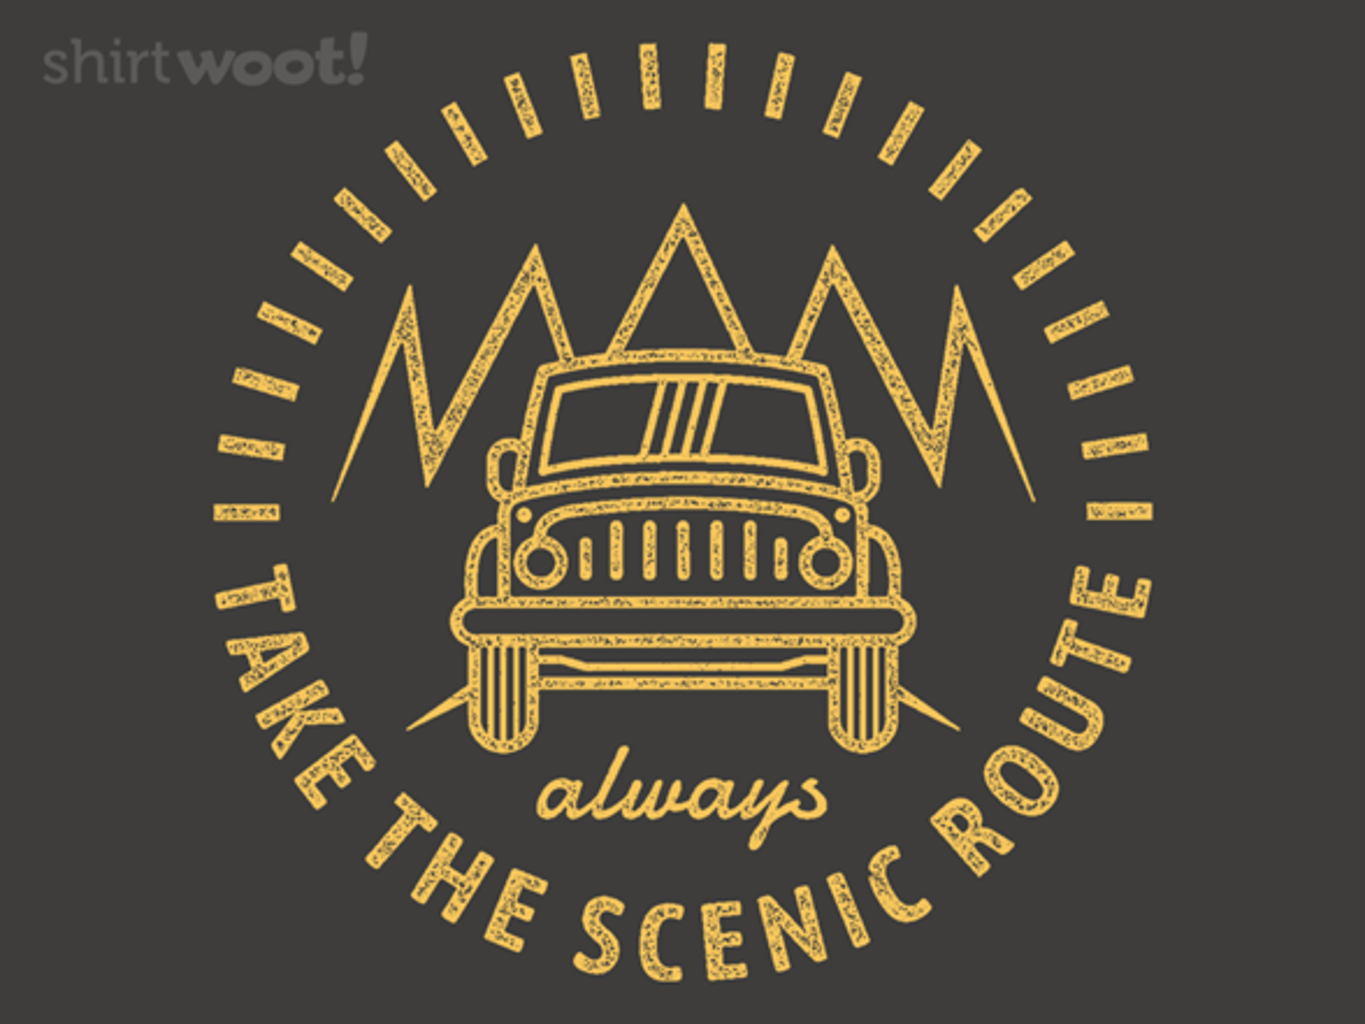 Woot!: Taking the Scenic Route